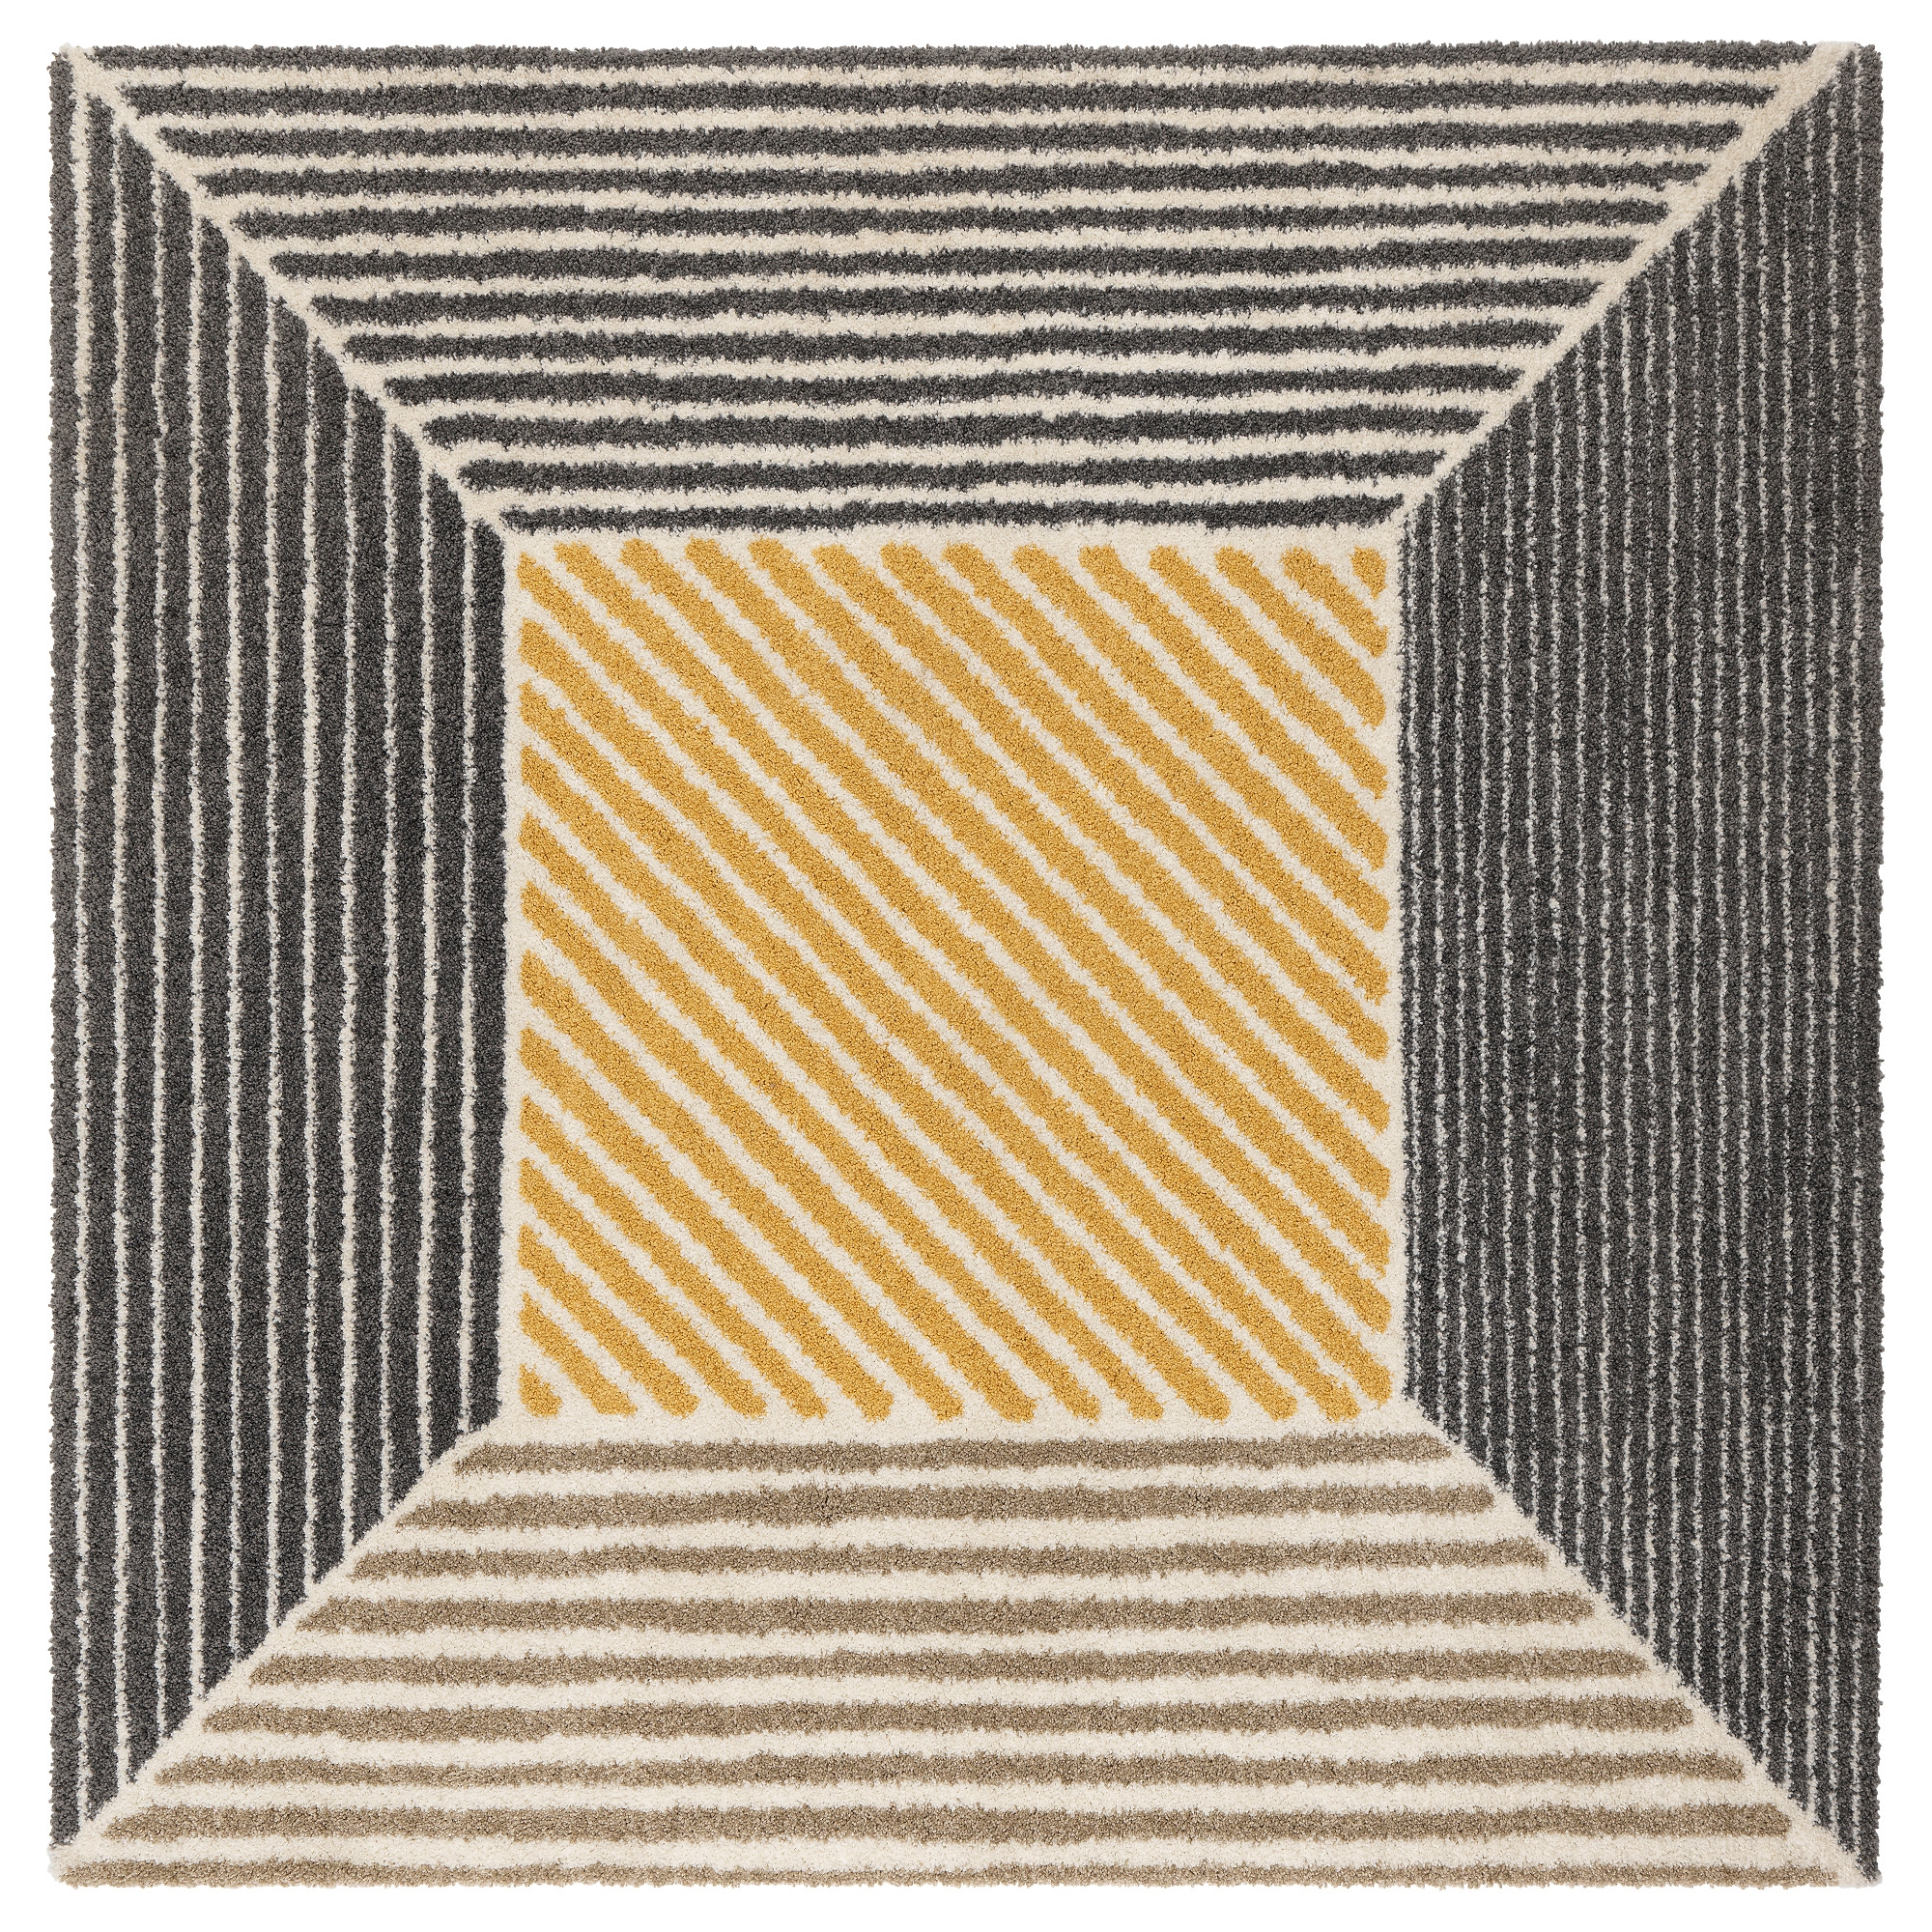 15 Inspirations Of Wool Area Rugs Ikea